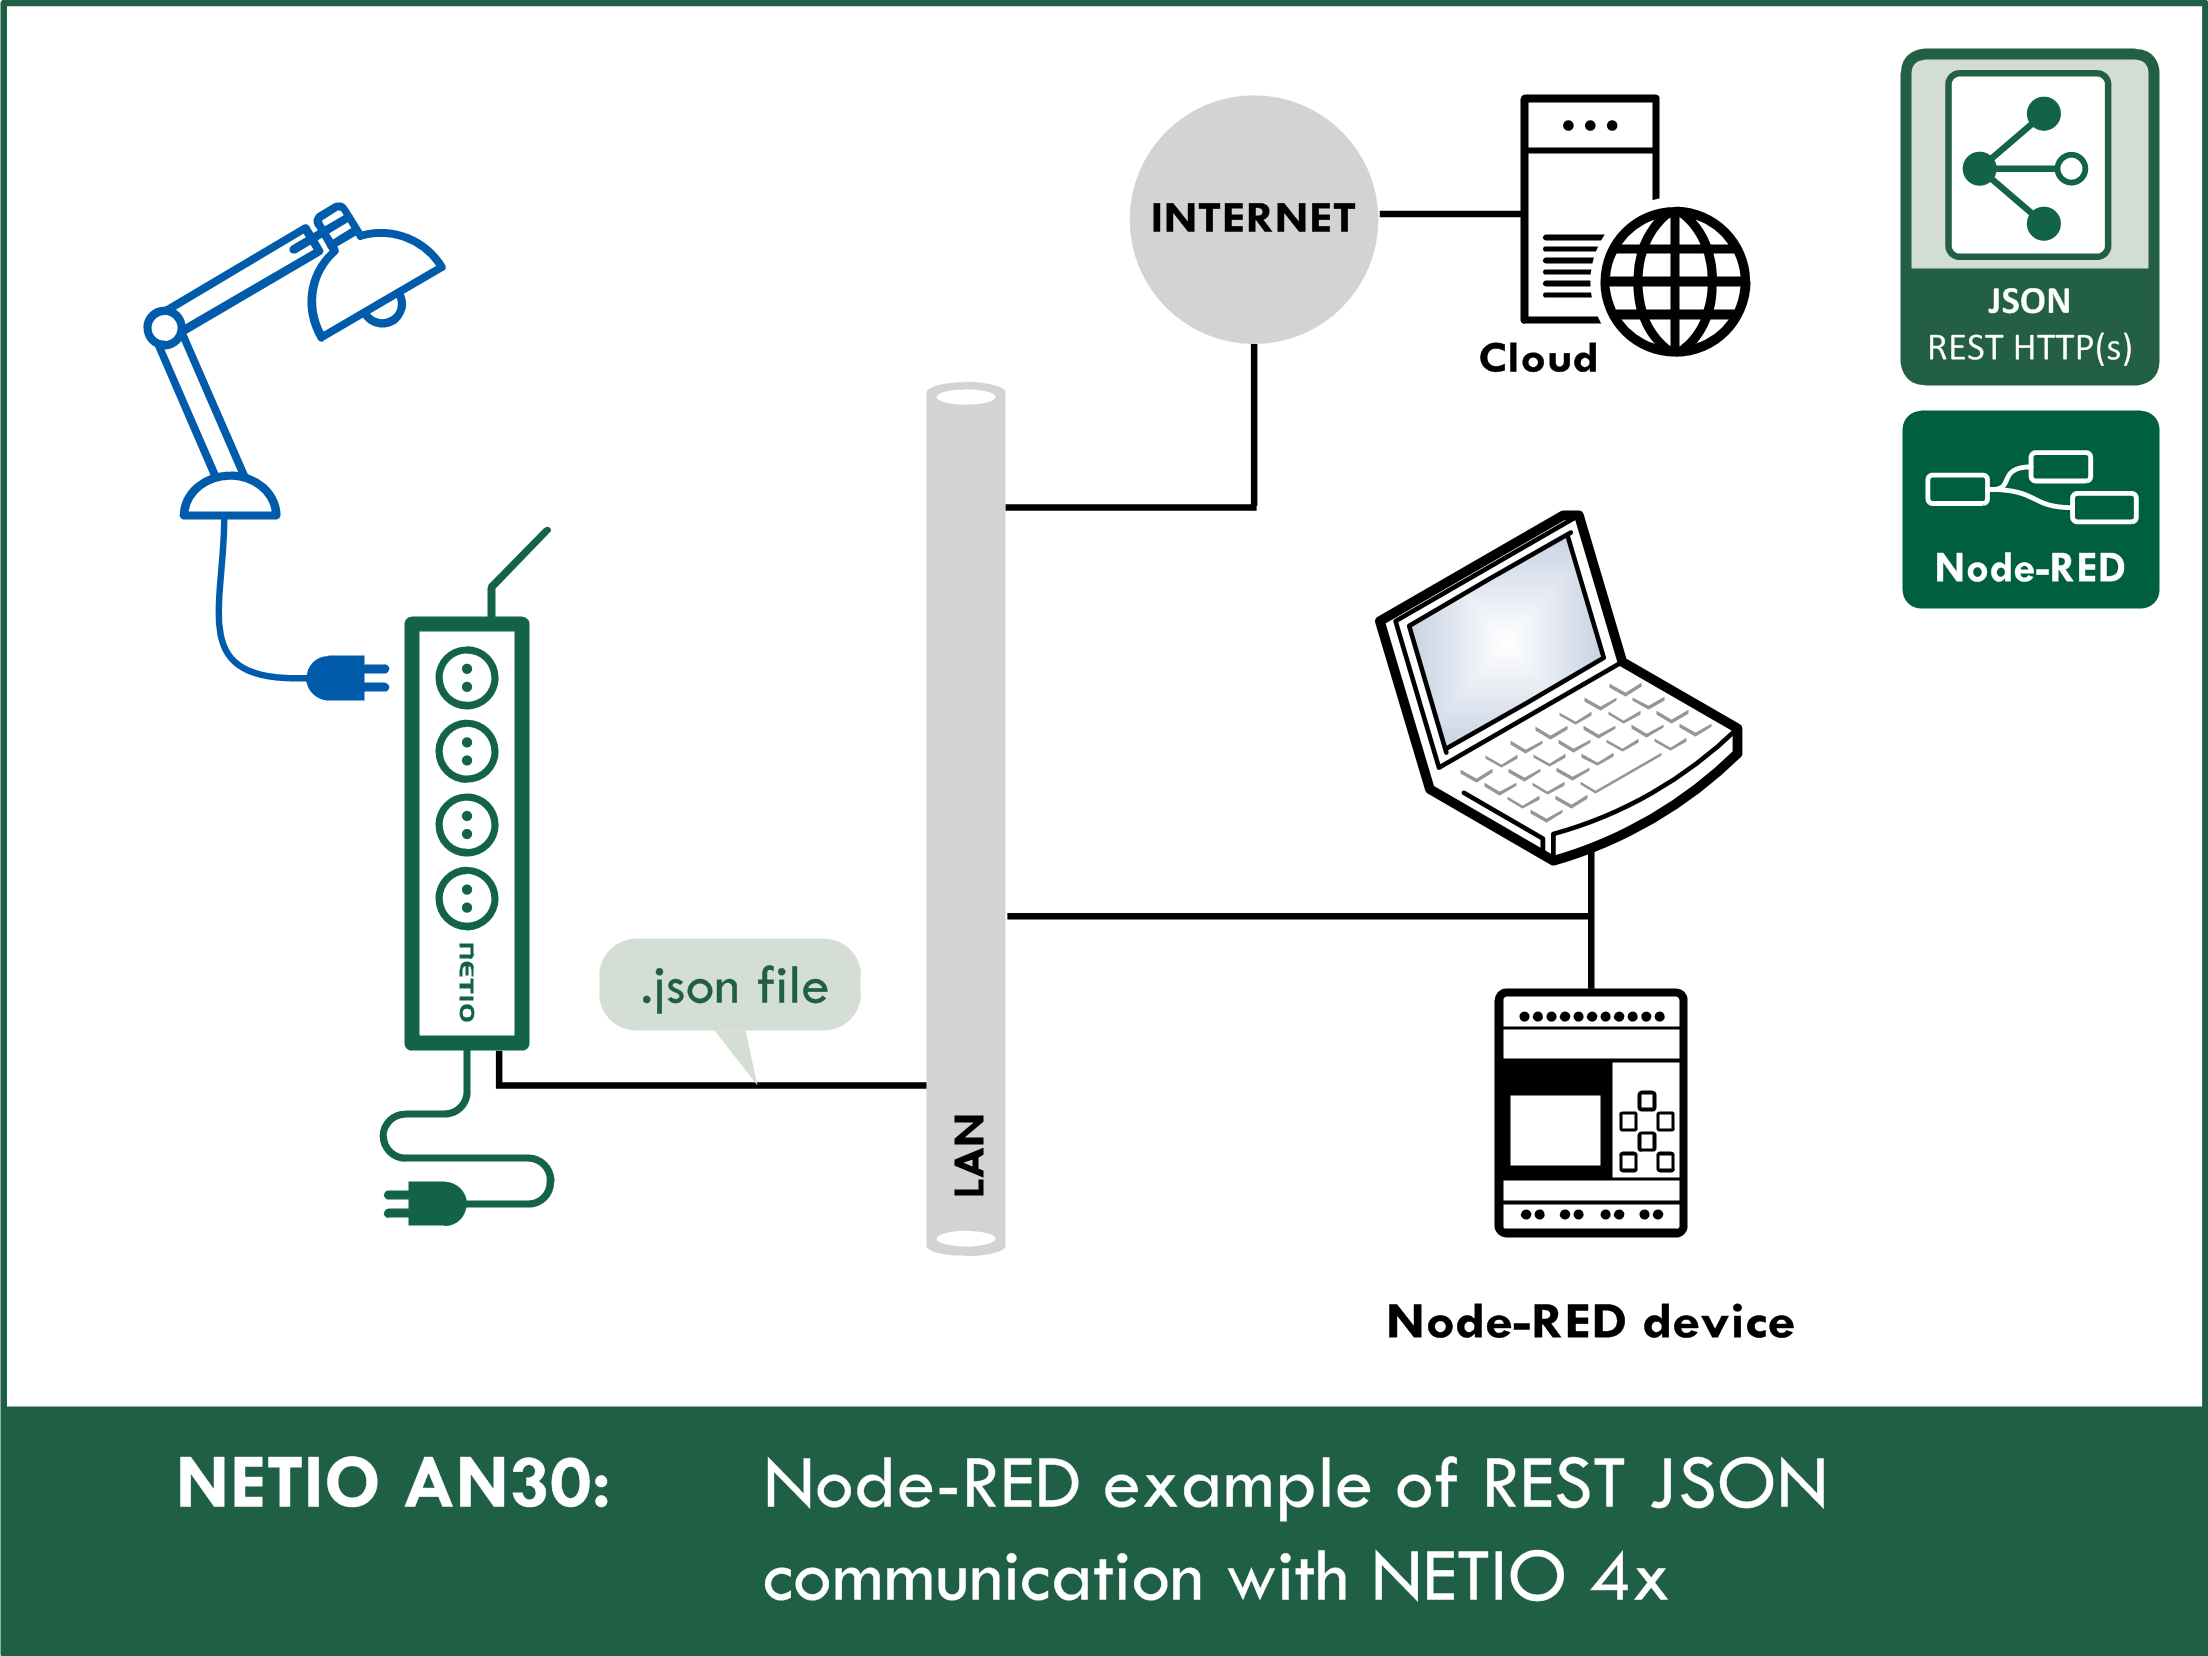 Node-RED example of REST JSON communication with NETIO 4x